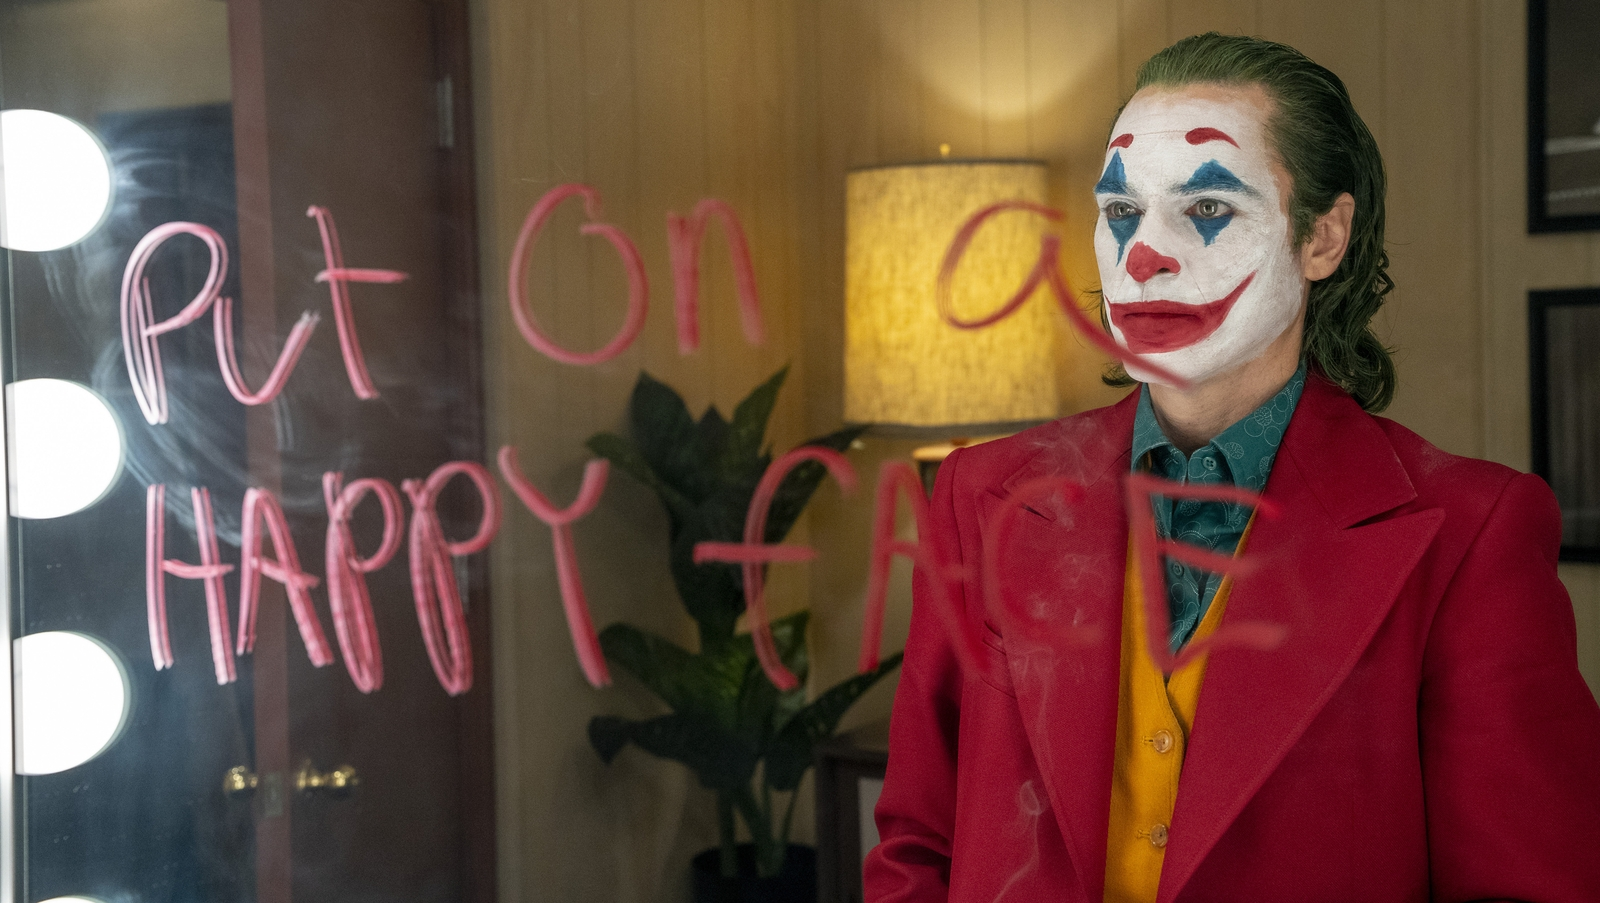 In foto, Joaquin Phoenix (Arthur/Joker) in una scena del film Joker, di Todd Phillips